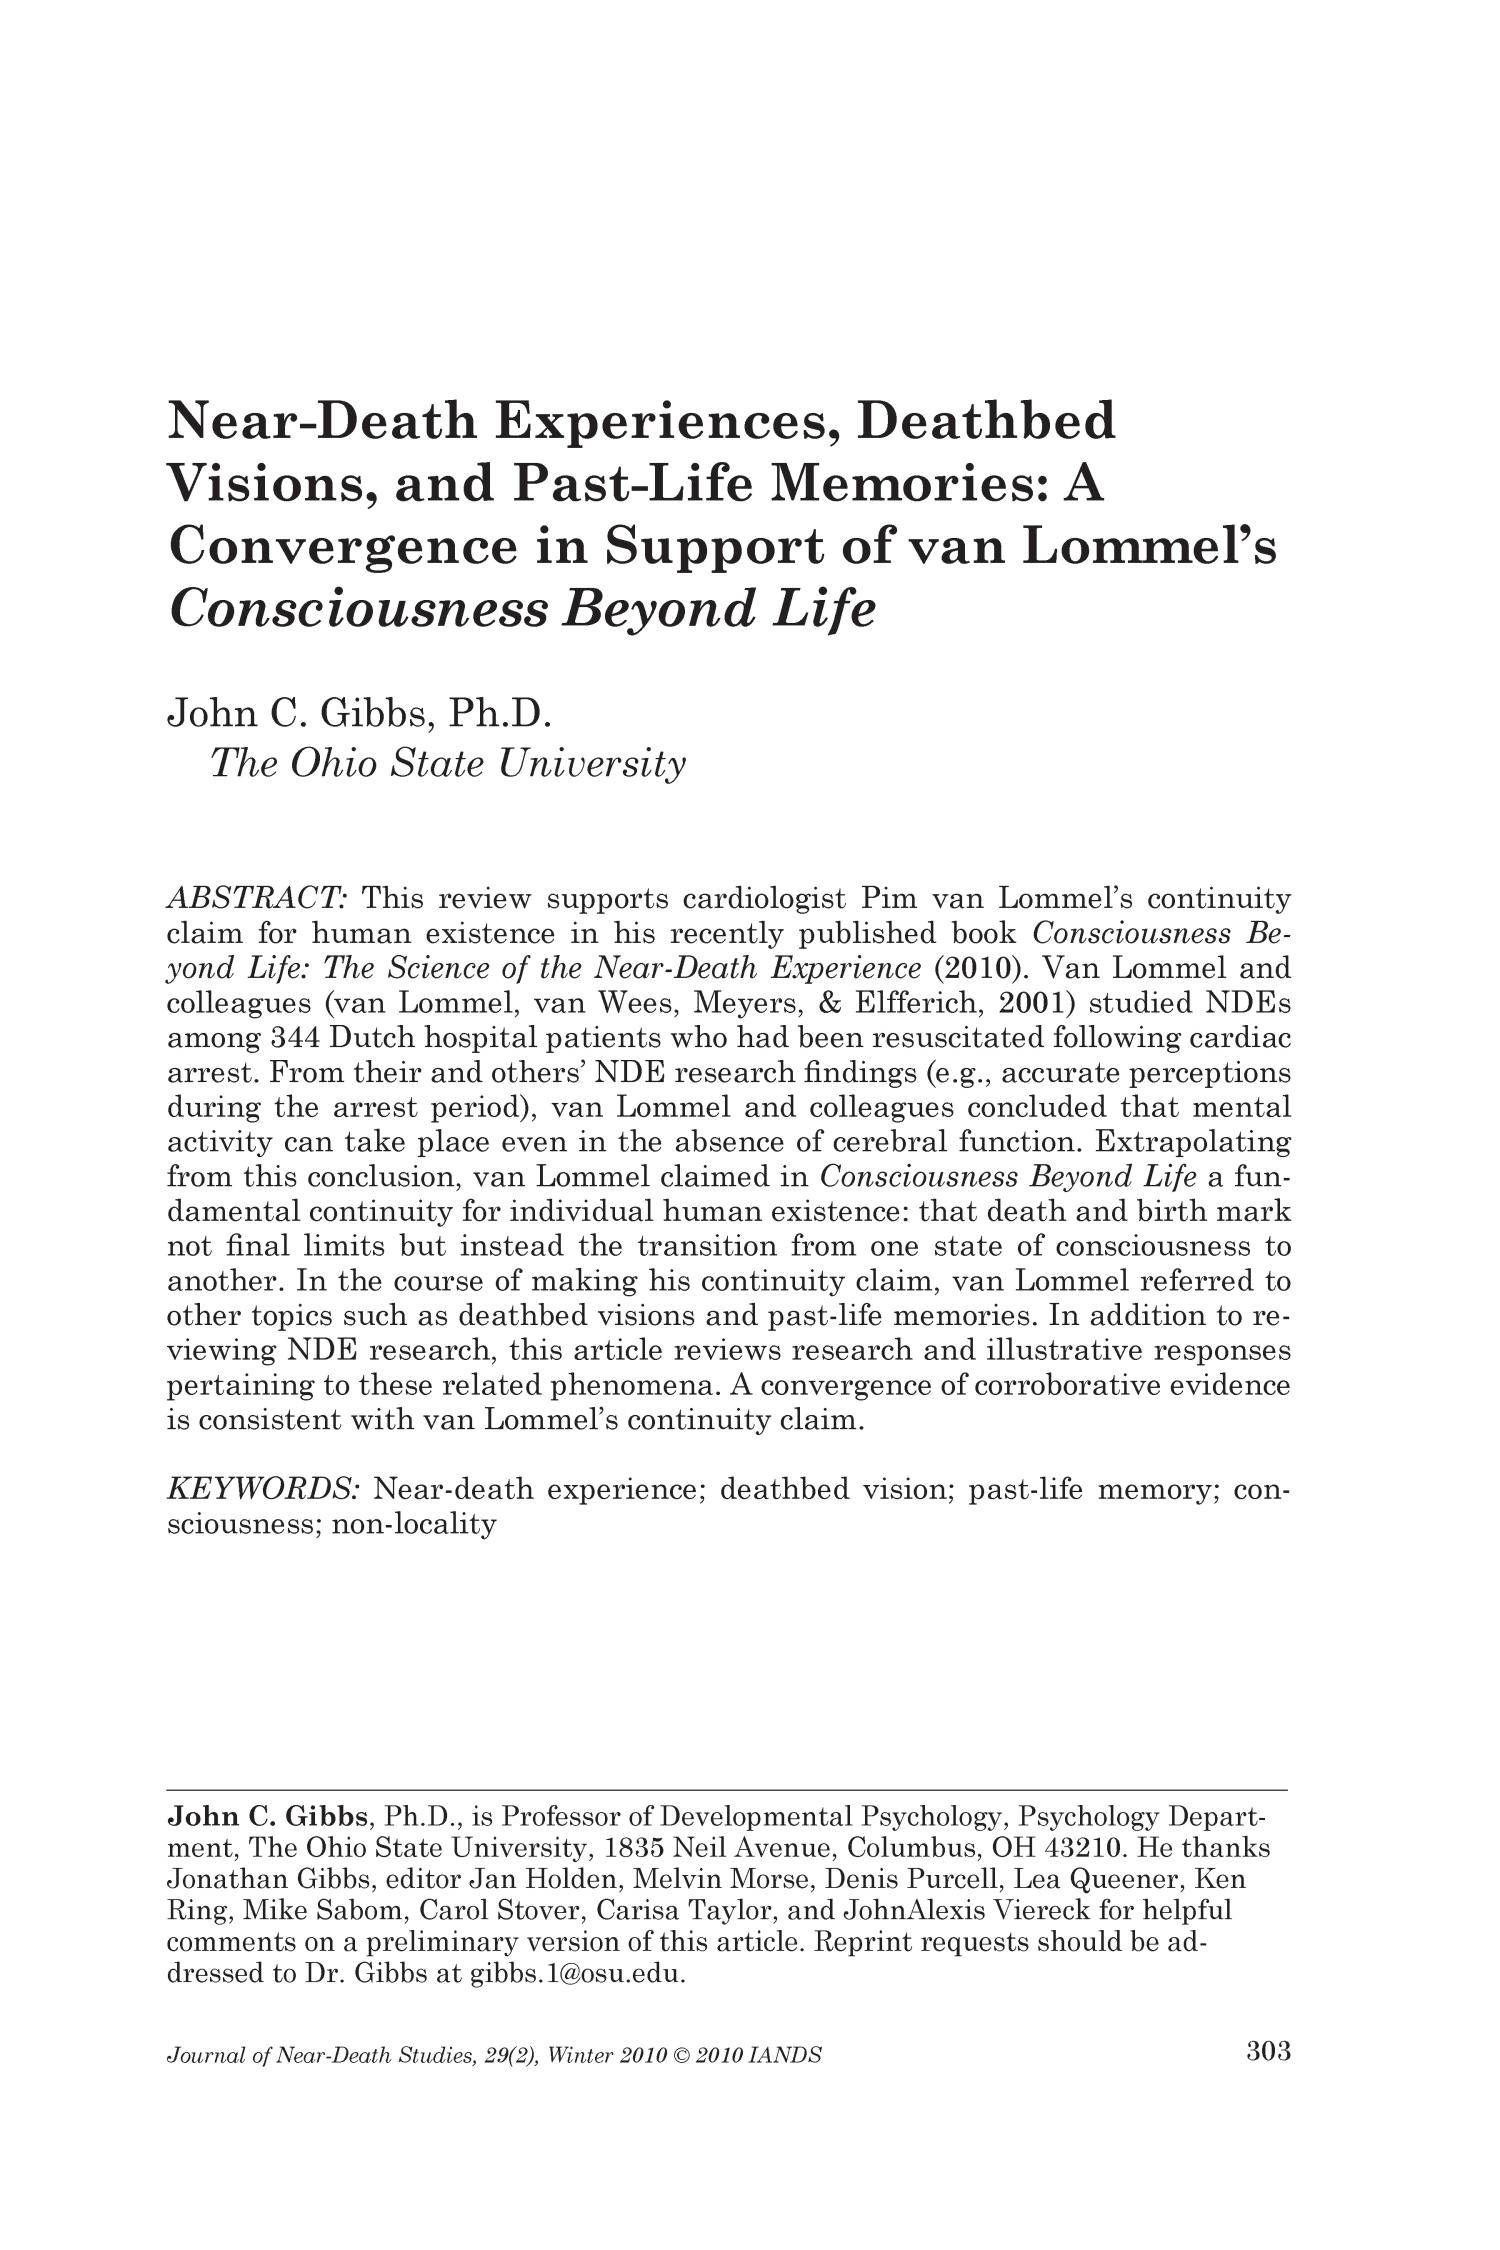 Near-Death Experiences, Deathbed Visions, and Past-Life Memories: A Convergence in Support of van Lommel's 'Consciousness Beyond Life'                                                                                                      303